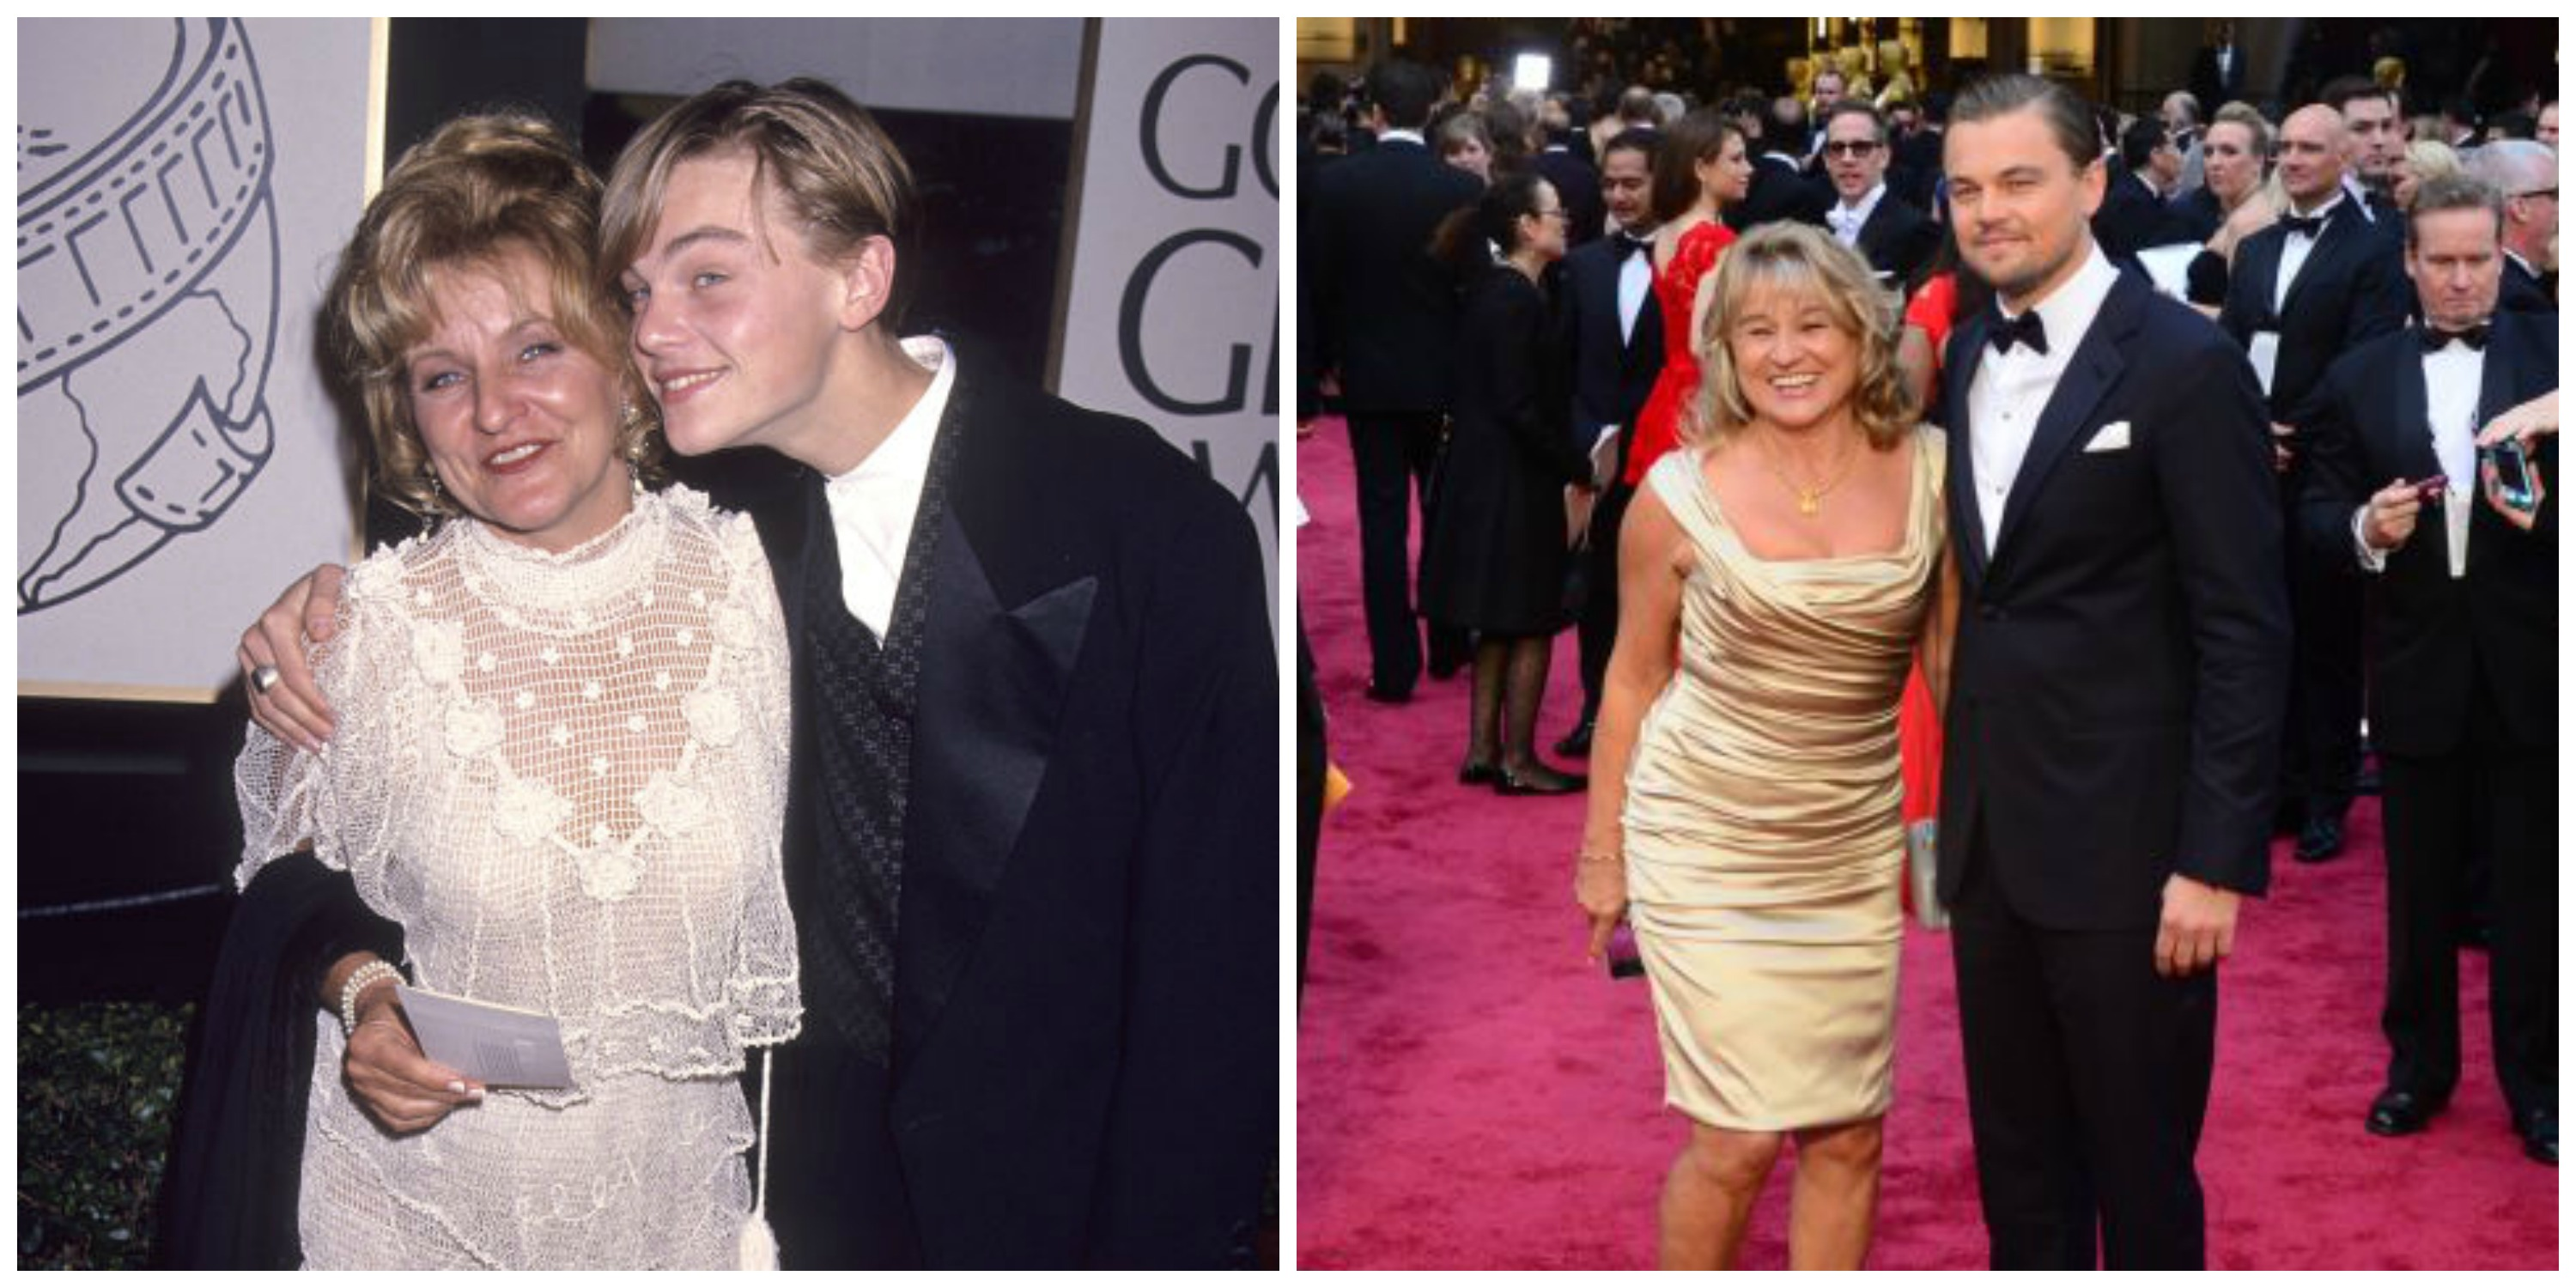 The History Of Leonardo DiCaprio Being Adorable With His Mom